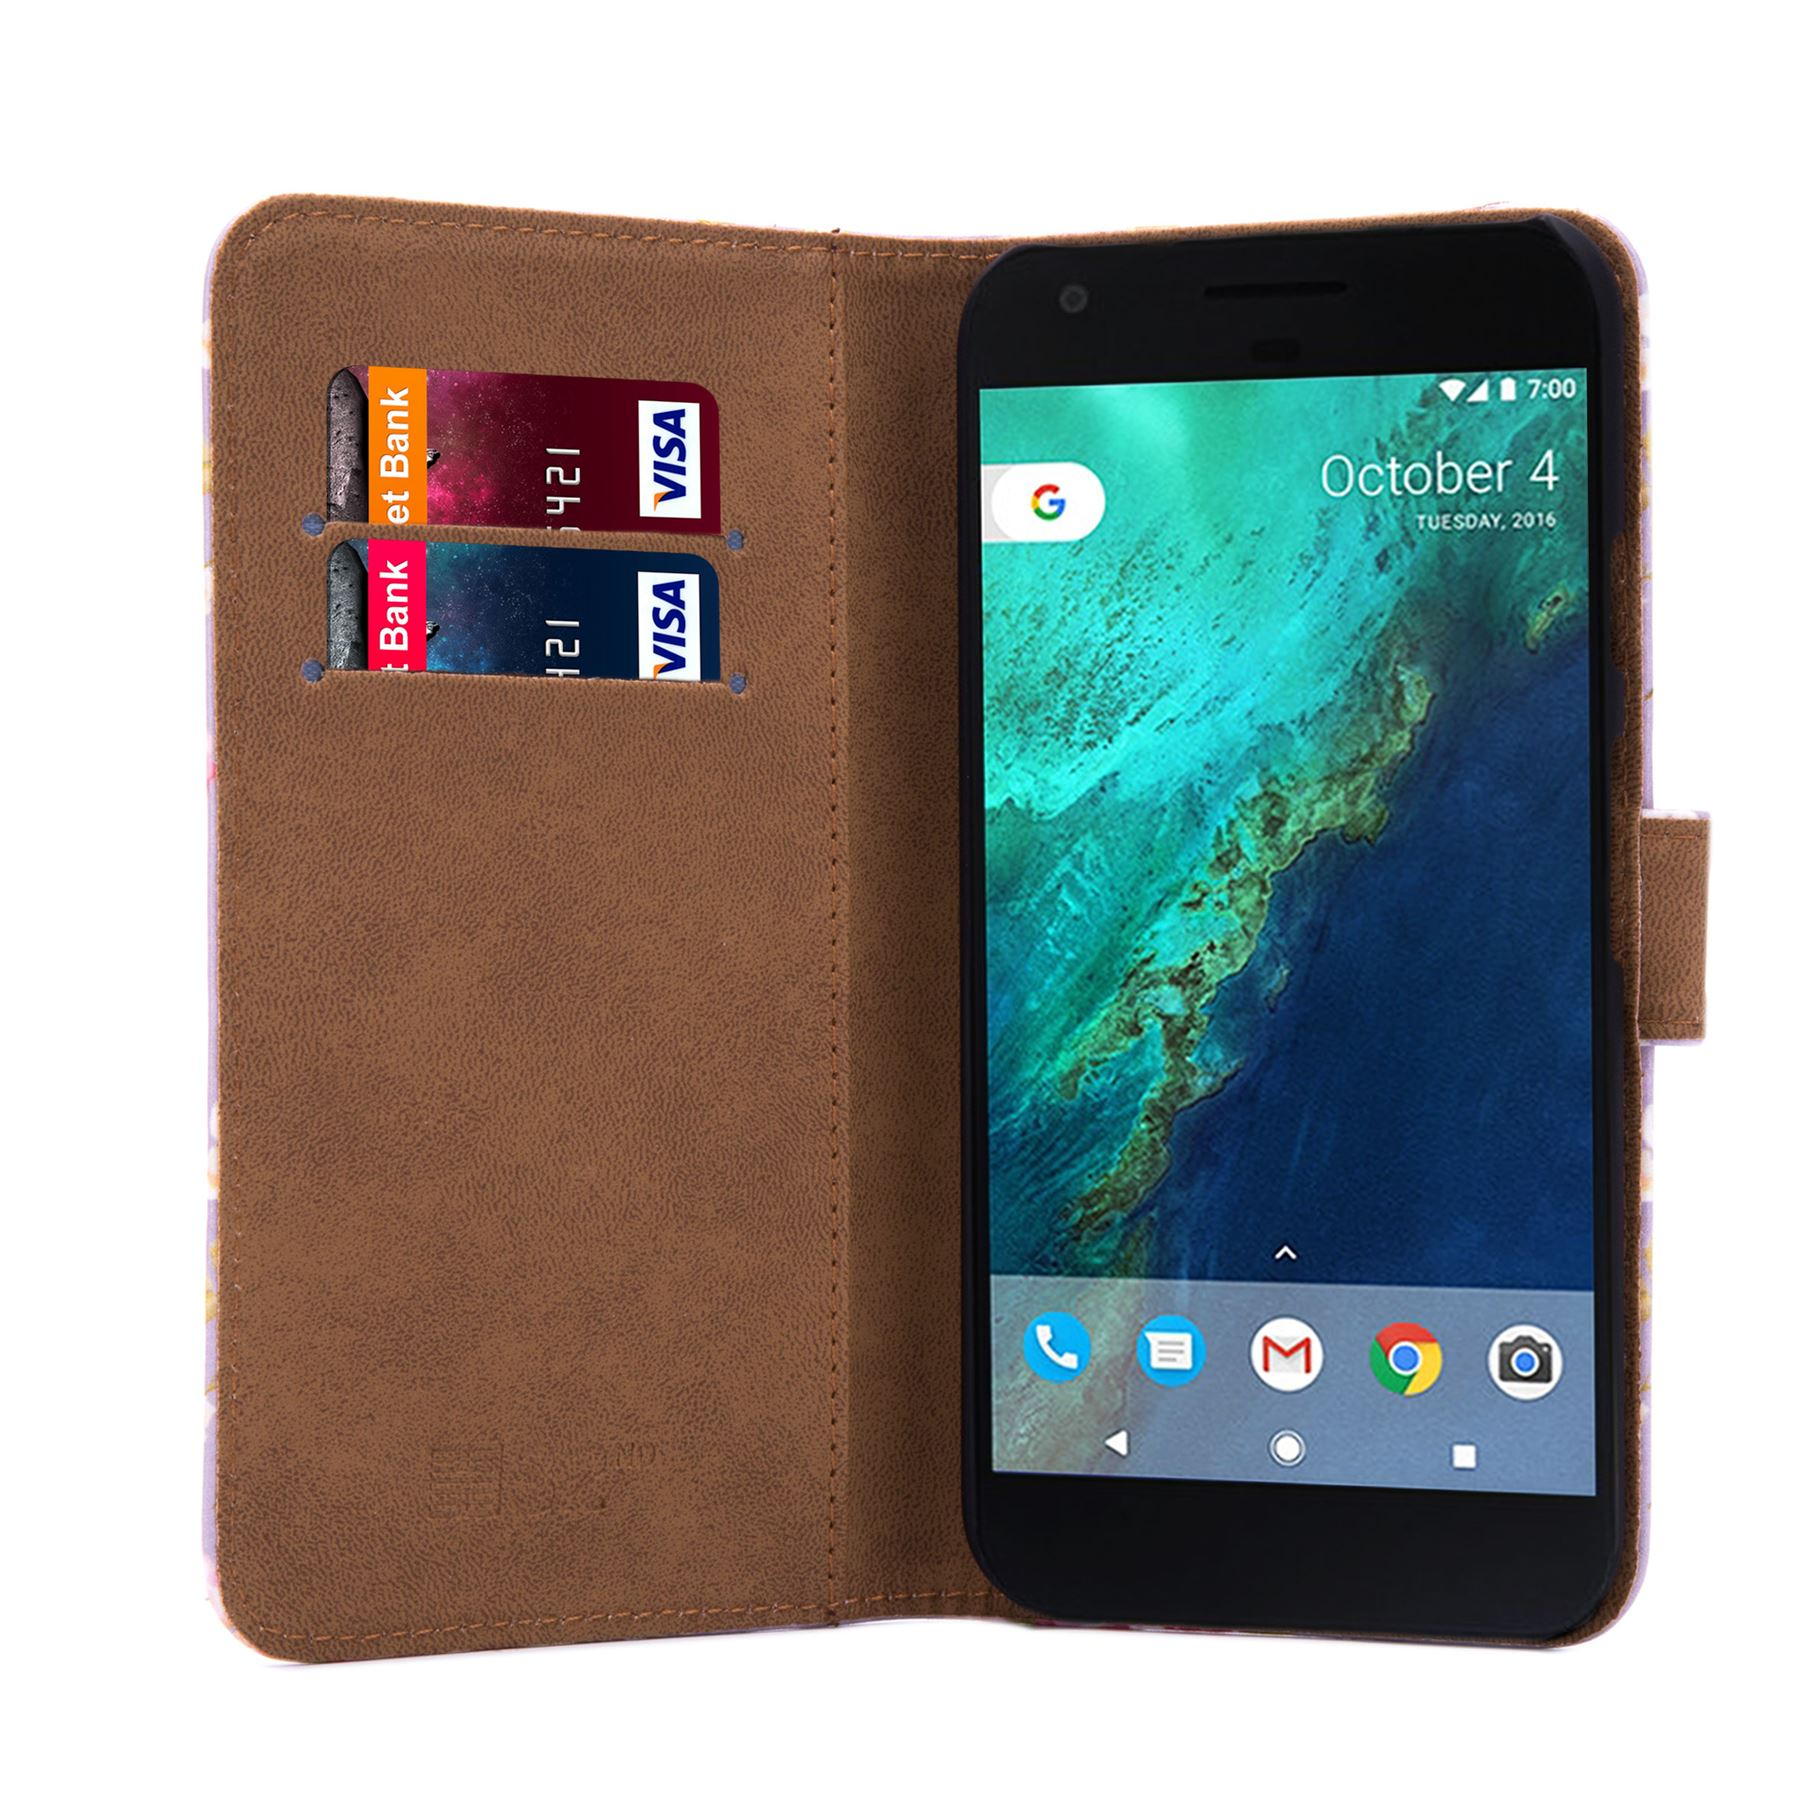 PU-Leather-Floral-Design-Book-Wallet-Case-Cover-For-Google-Pixel thumbnail 41